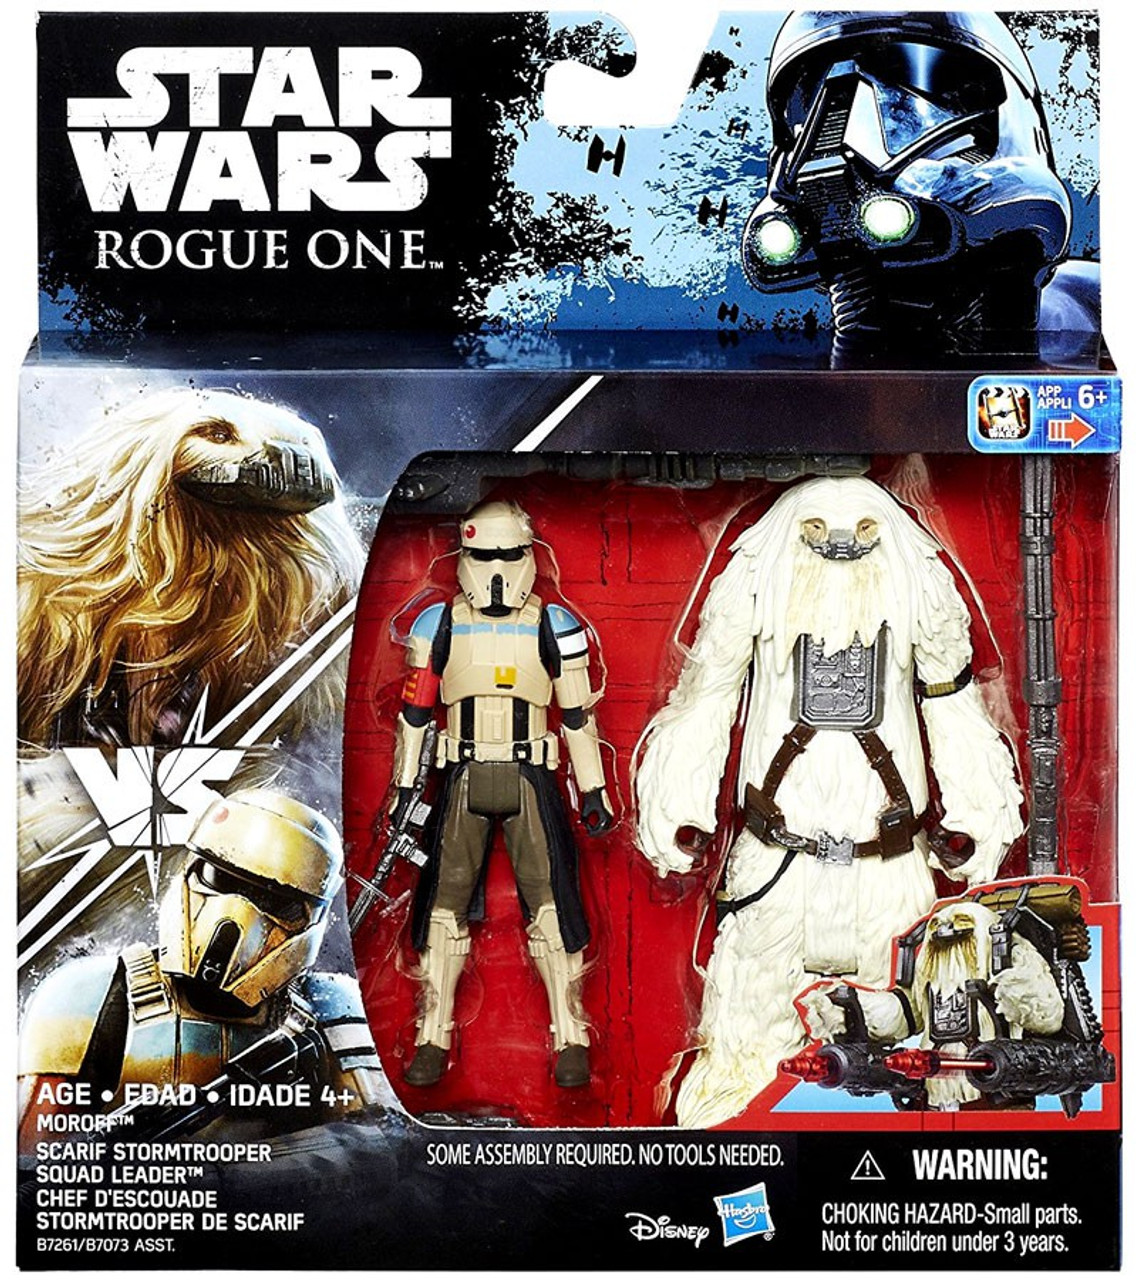 Starwars Event Fnaf Rp Help Wanted Roblox Star Wars Rogue One Moroff Scarif Stormtrooper Squad Leader 3 75 Action Figure 2 Pack Hasbro Toys Toywiz